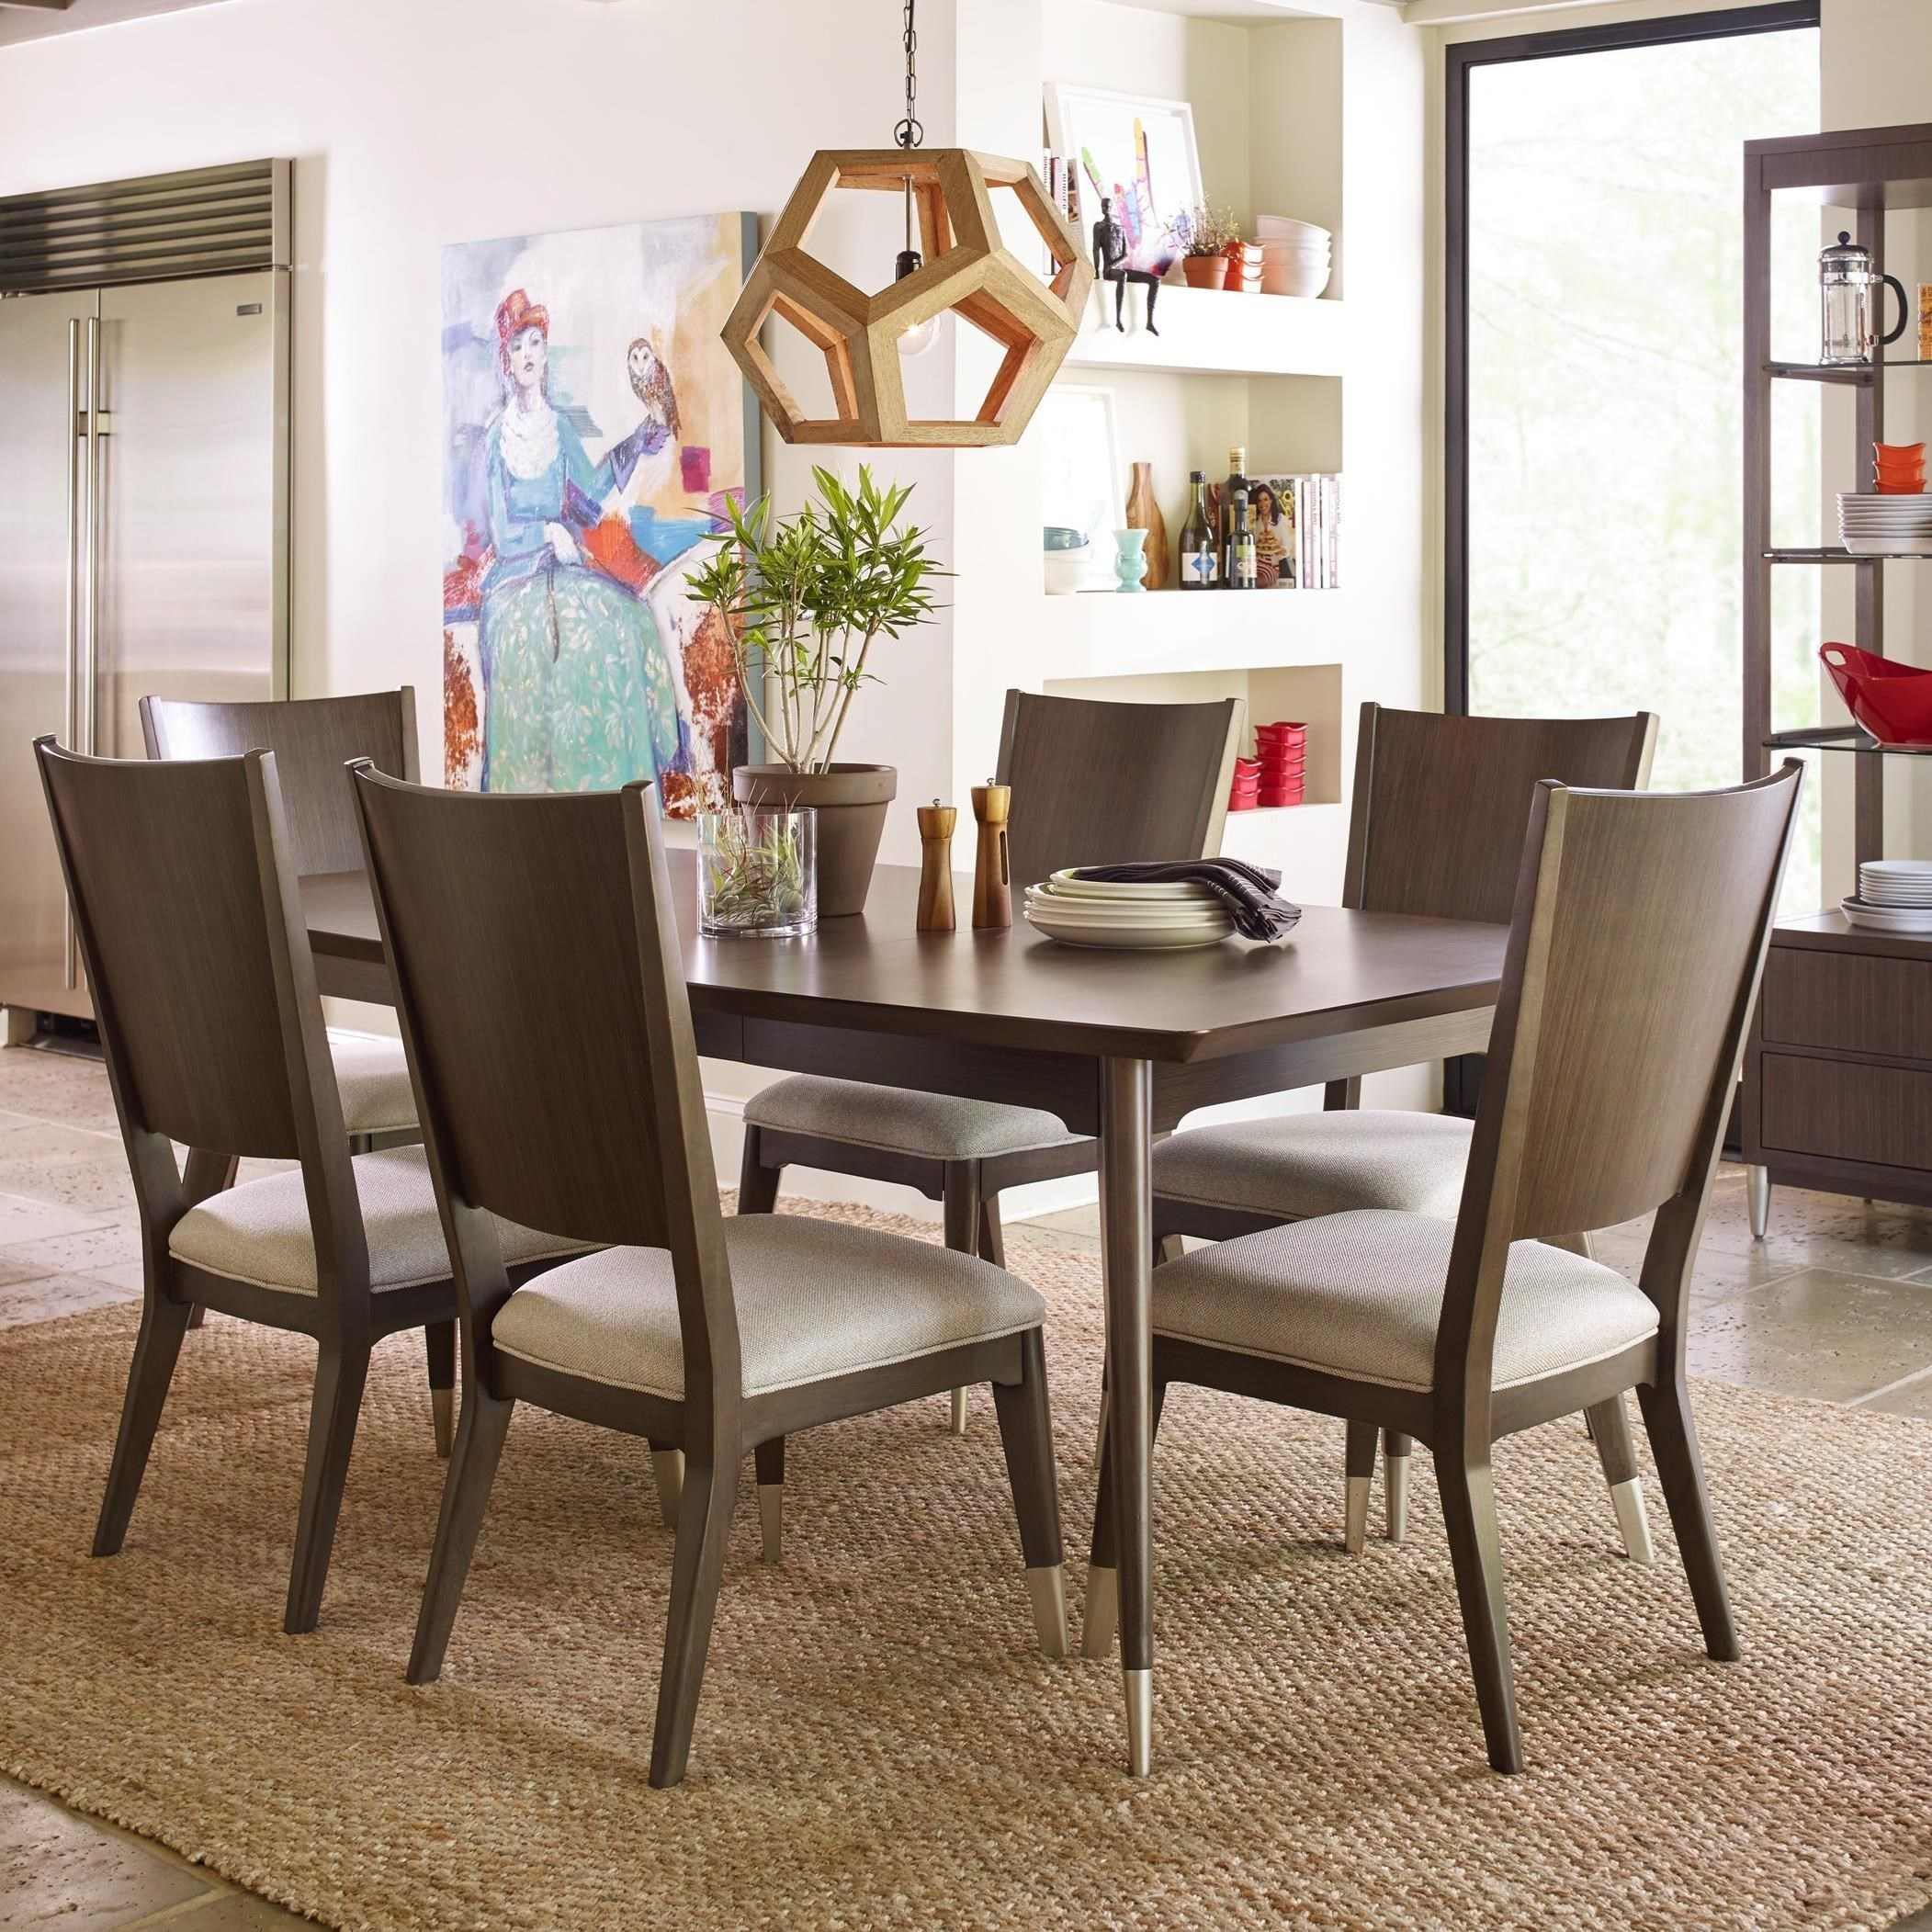 Exceptional Rachael Ray Home By Legacy Classic Soho Mid Century Modern 7 Piece Table  And Chair Set With Upholstered Seating